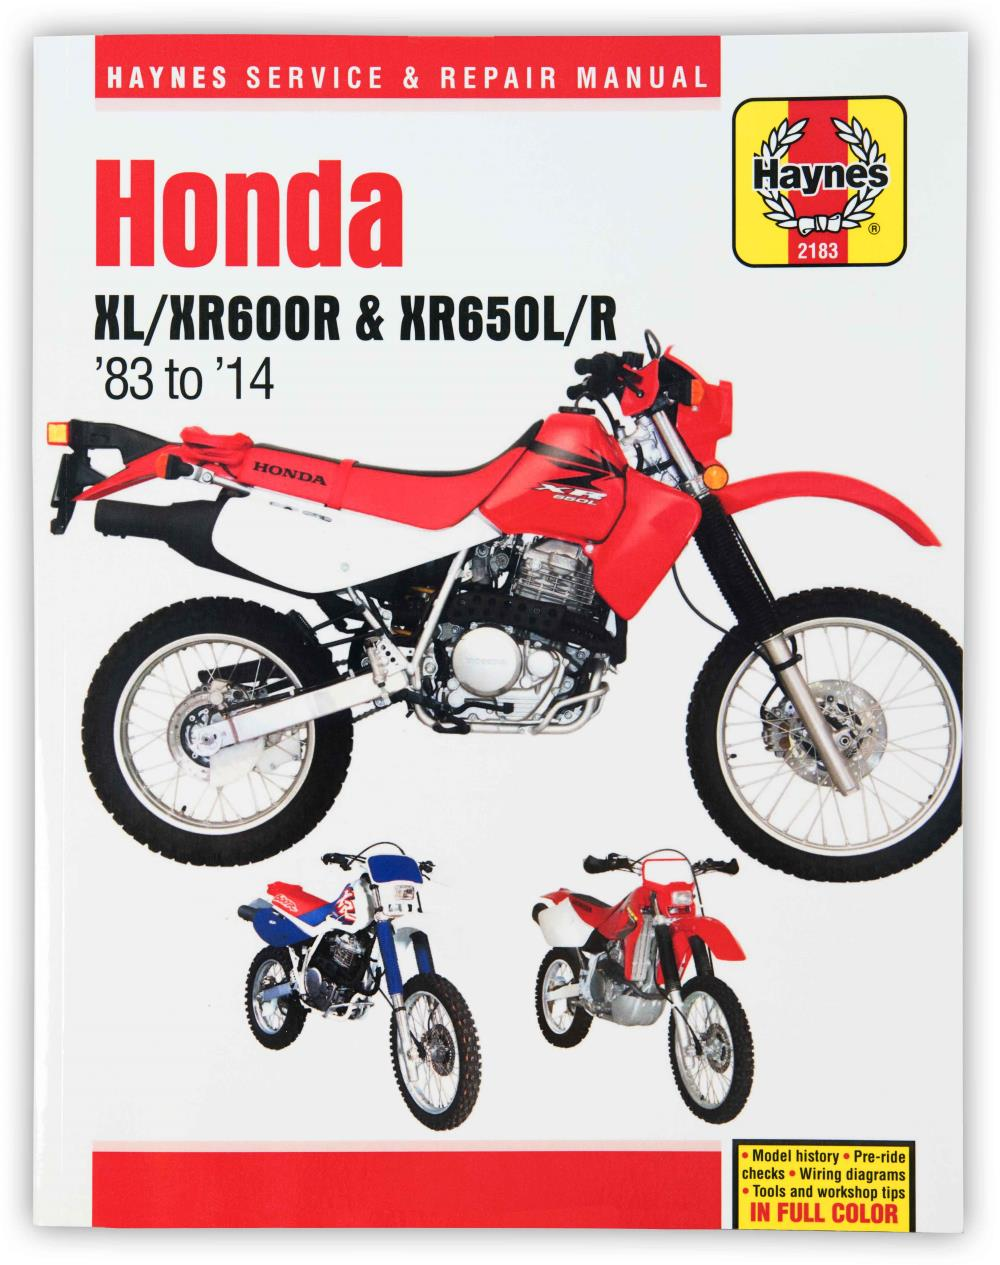 honda xrm 125 owners manual